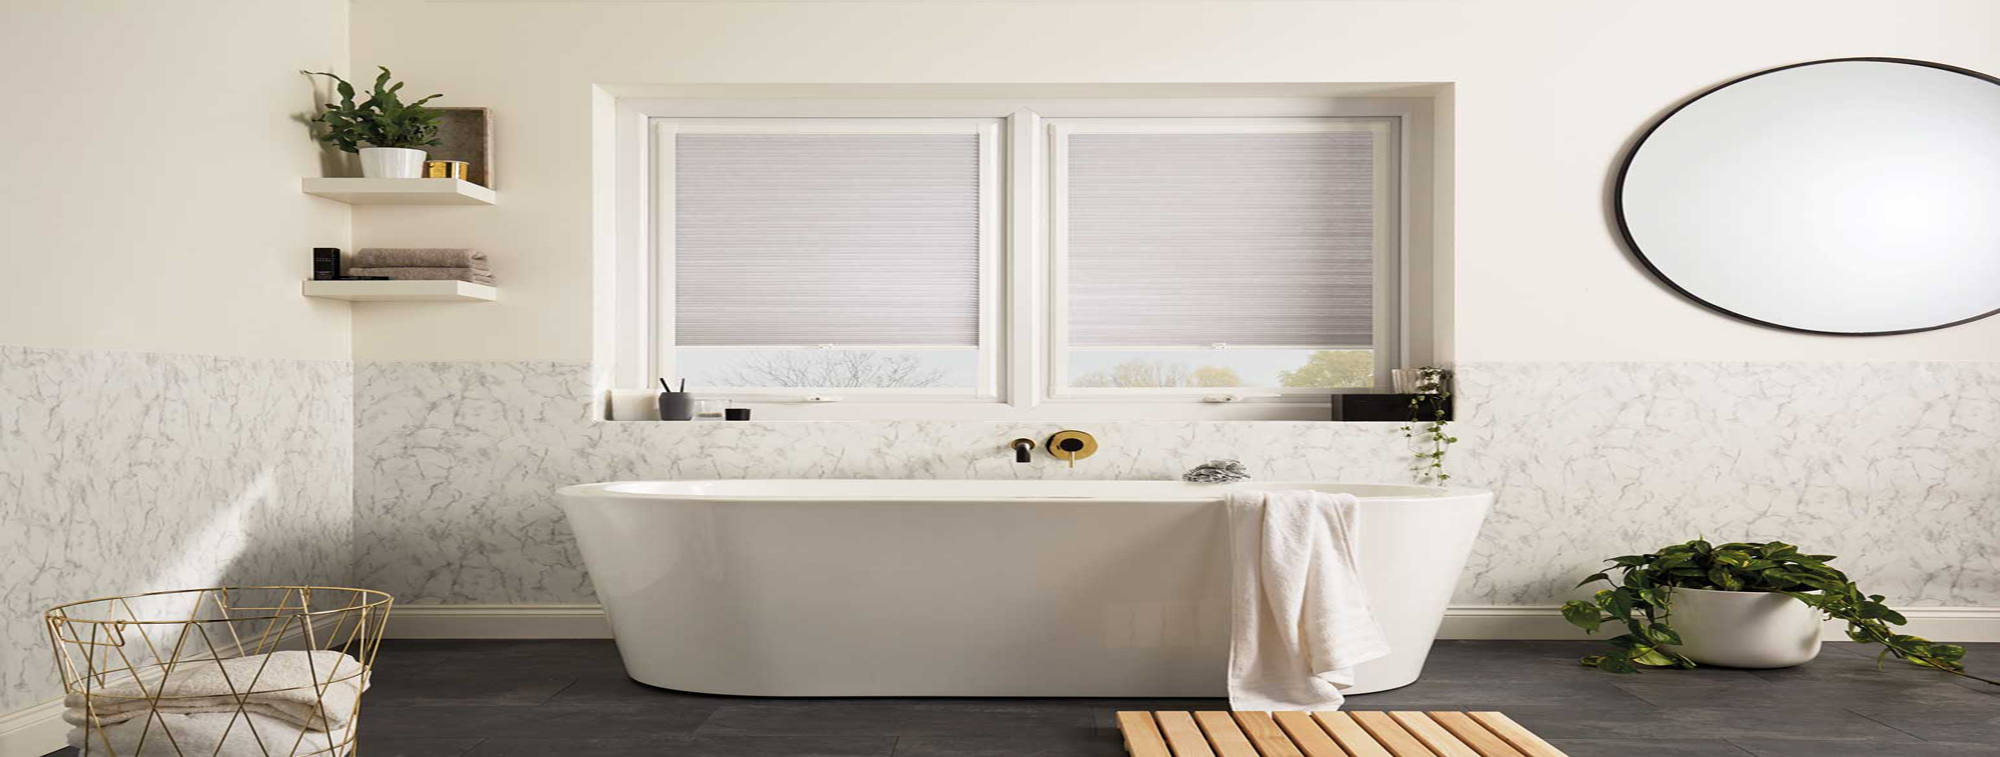 Blinds bathroom